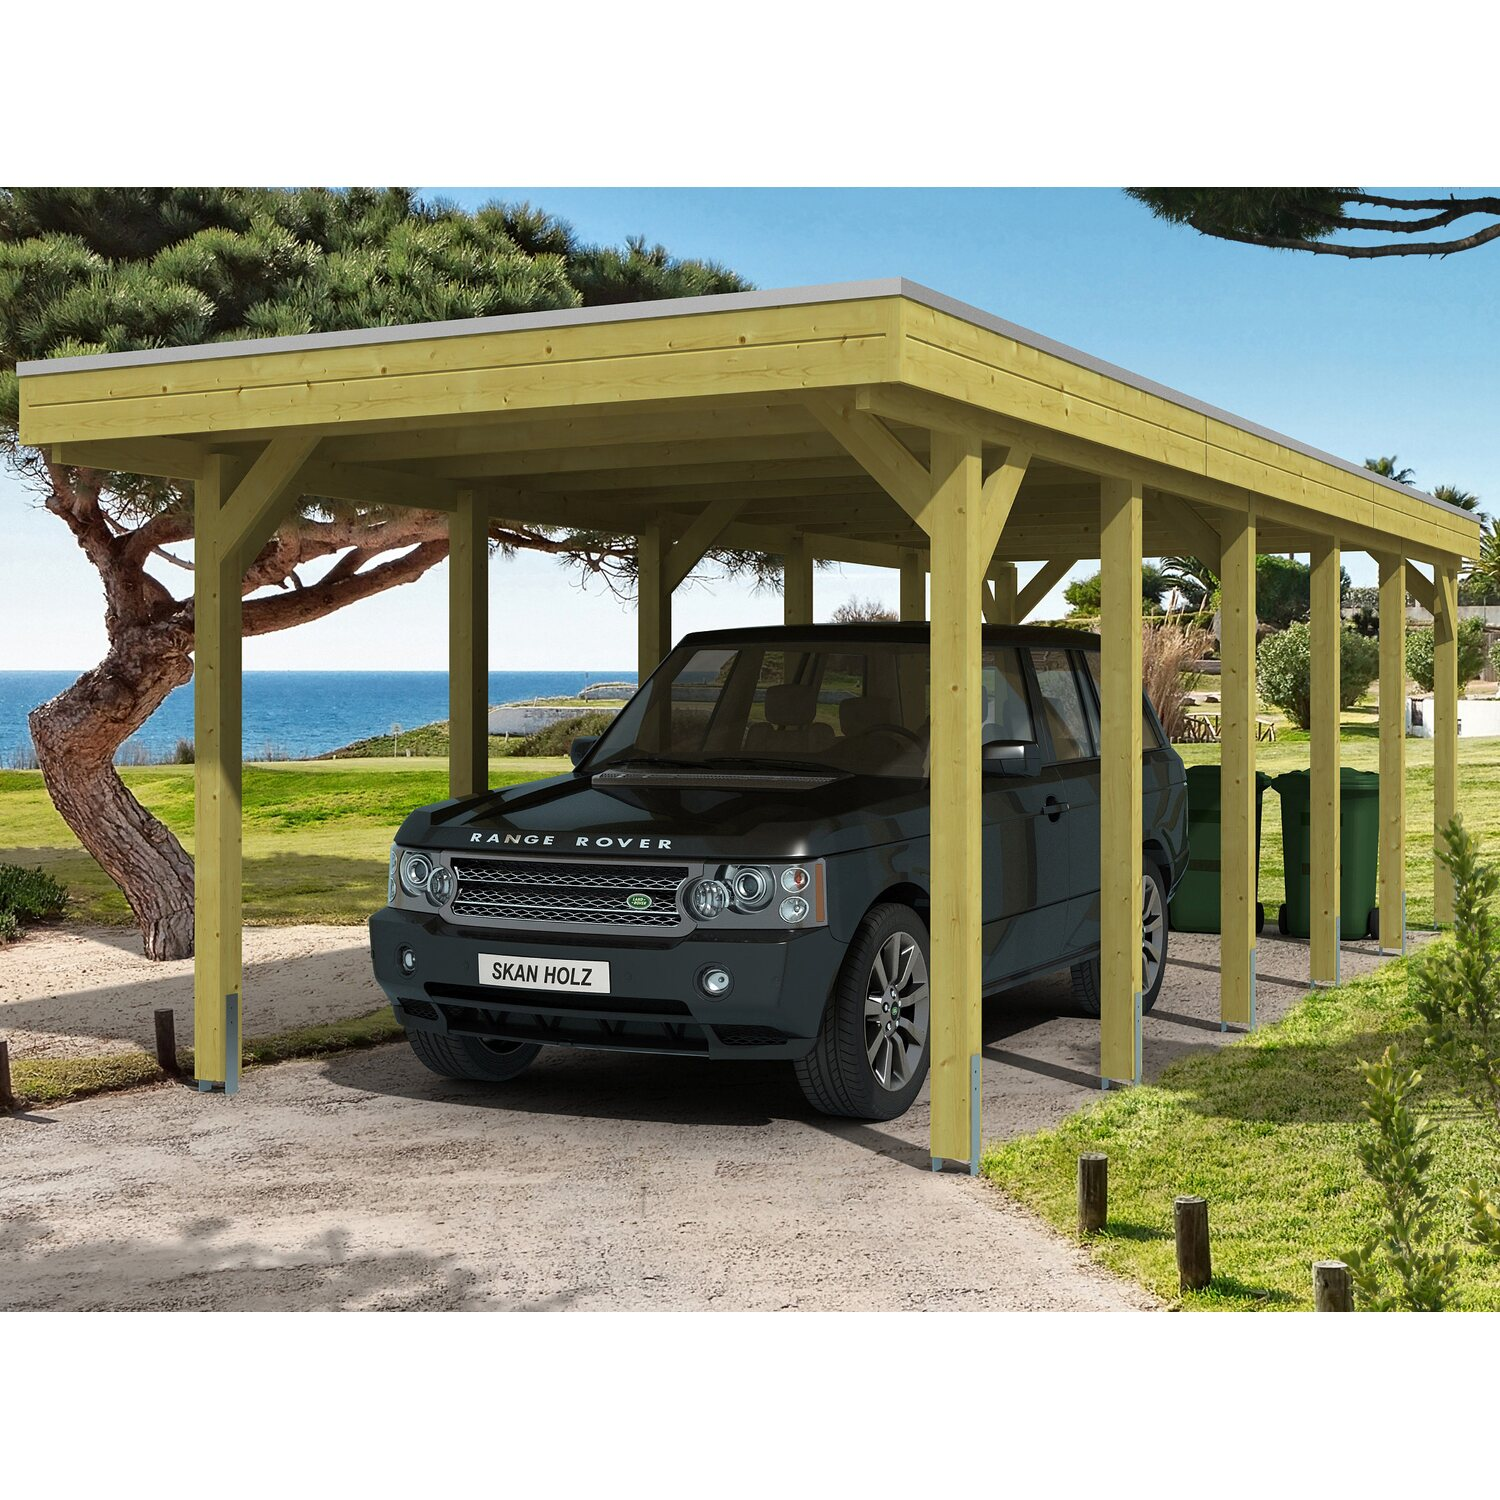 skan holz carport friesland 314 cm x 860 cm kaufen bei obi. Black Bedroom Furniture Sets. Home Design Ideas